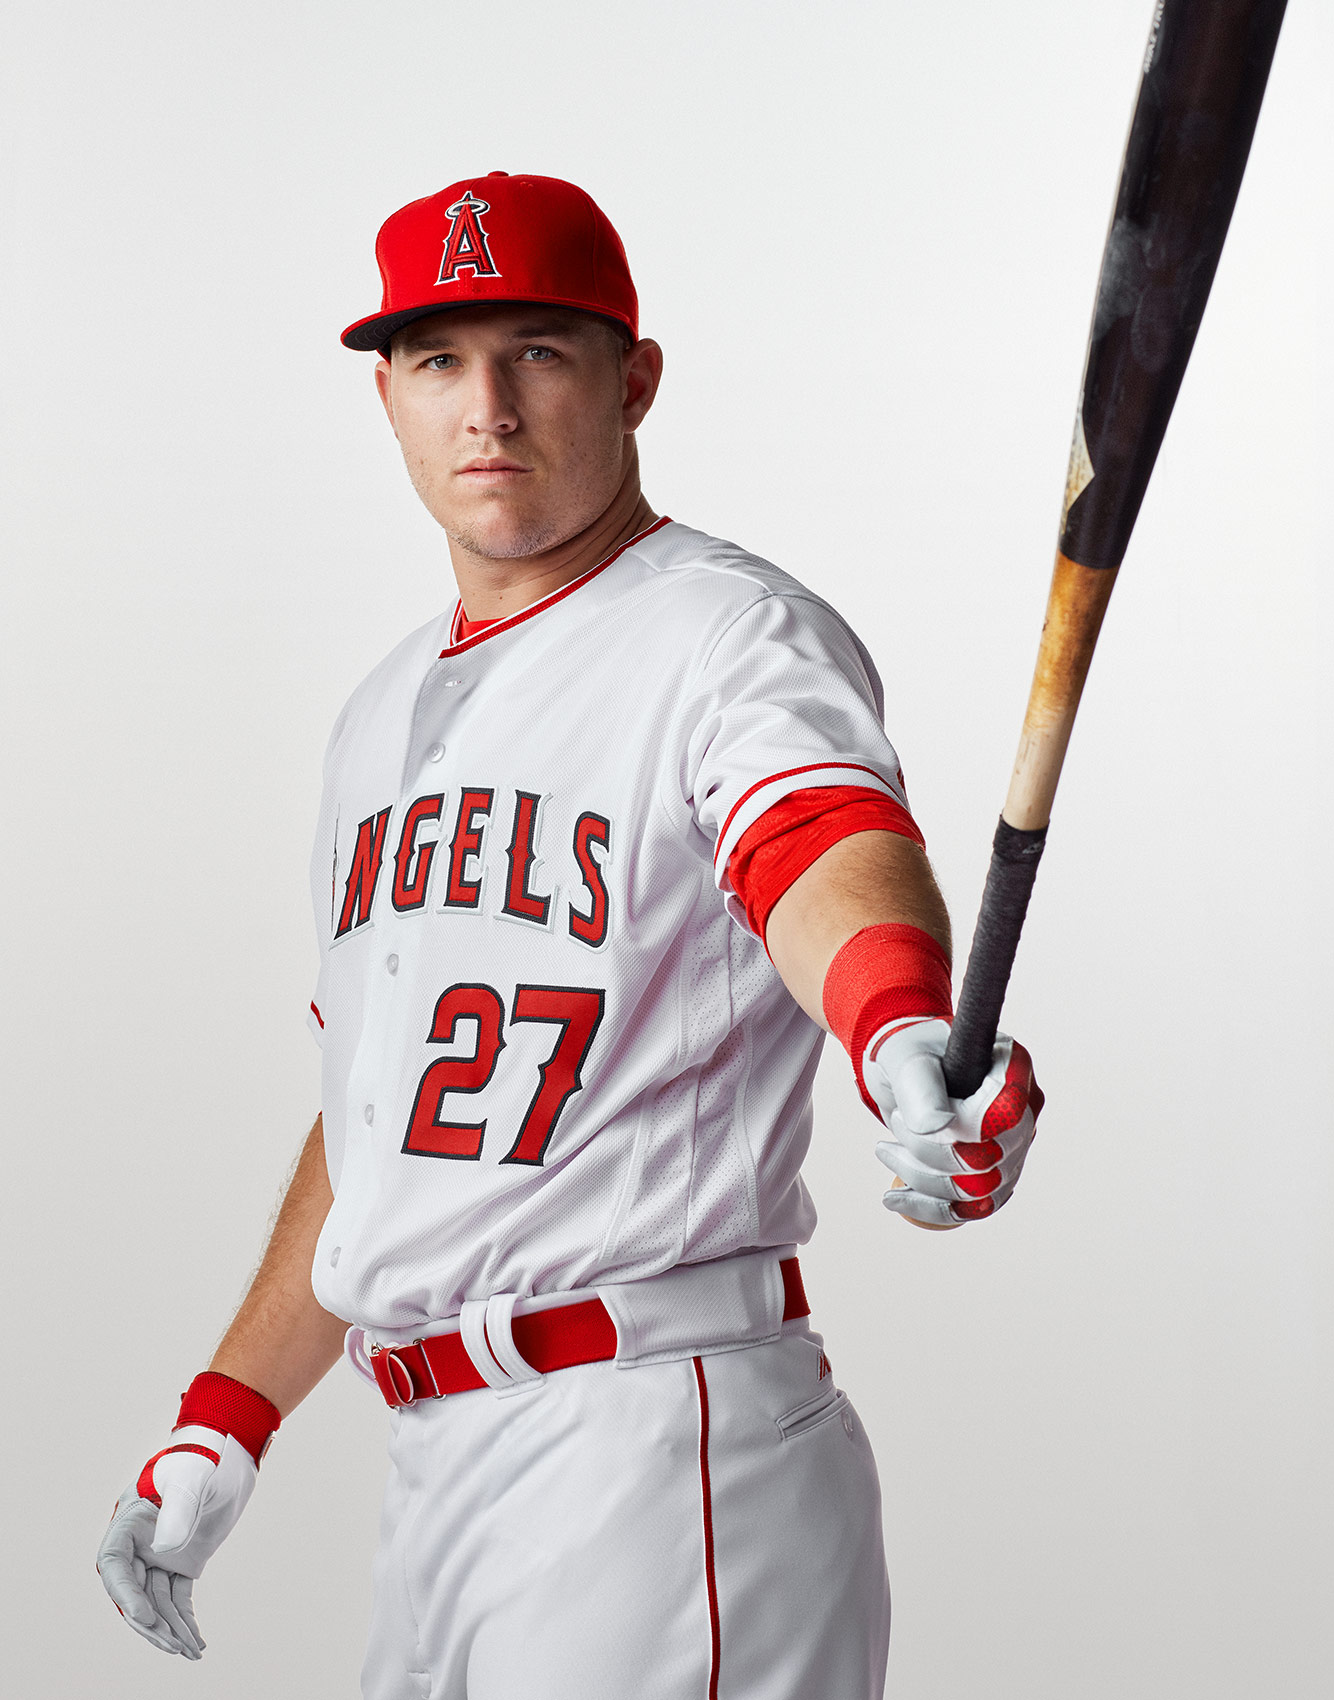 20161216_mike-trout_3233-web-crop2